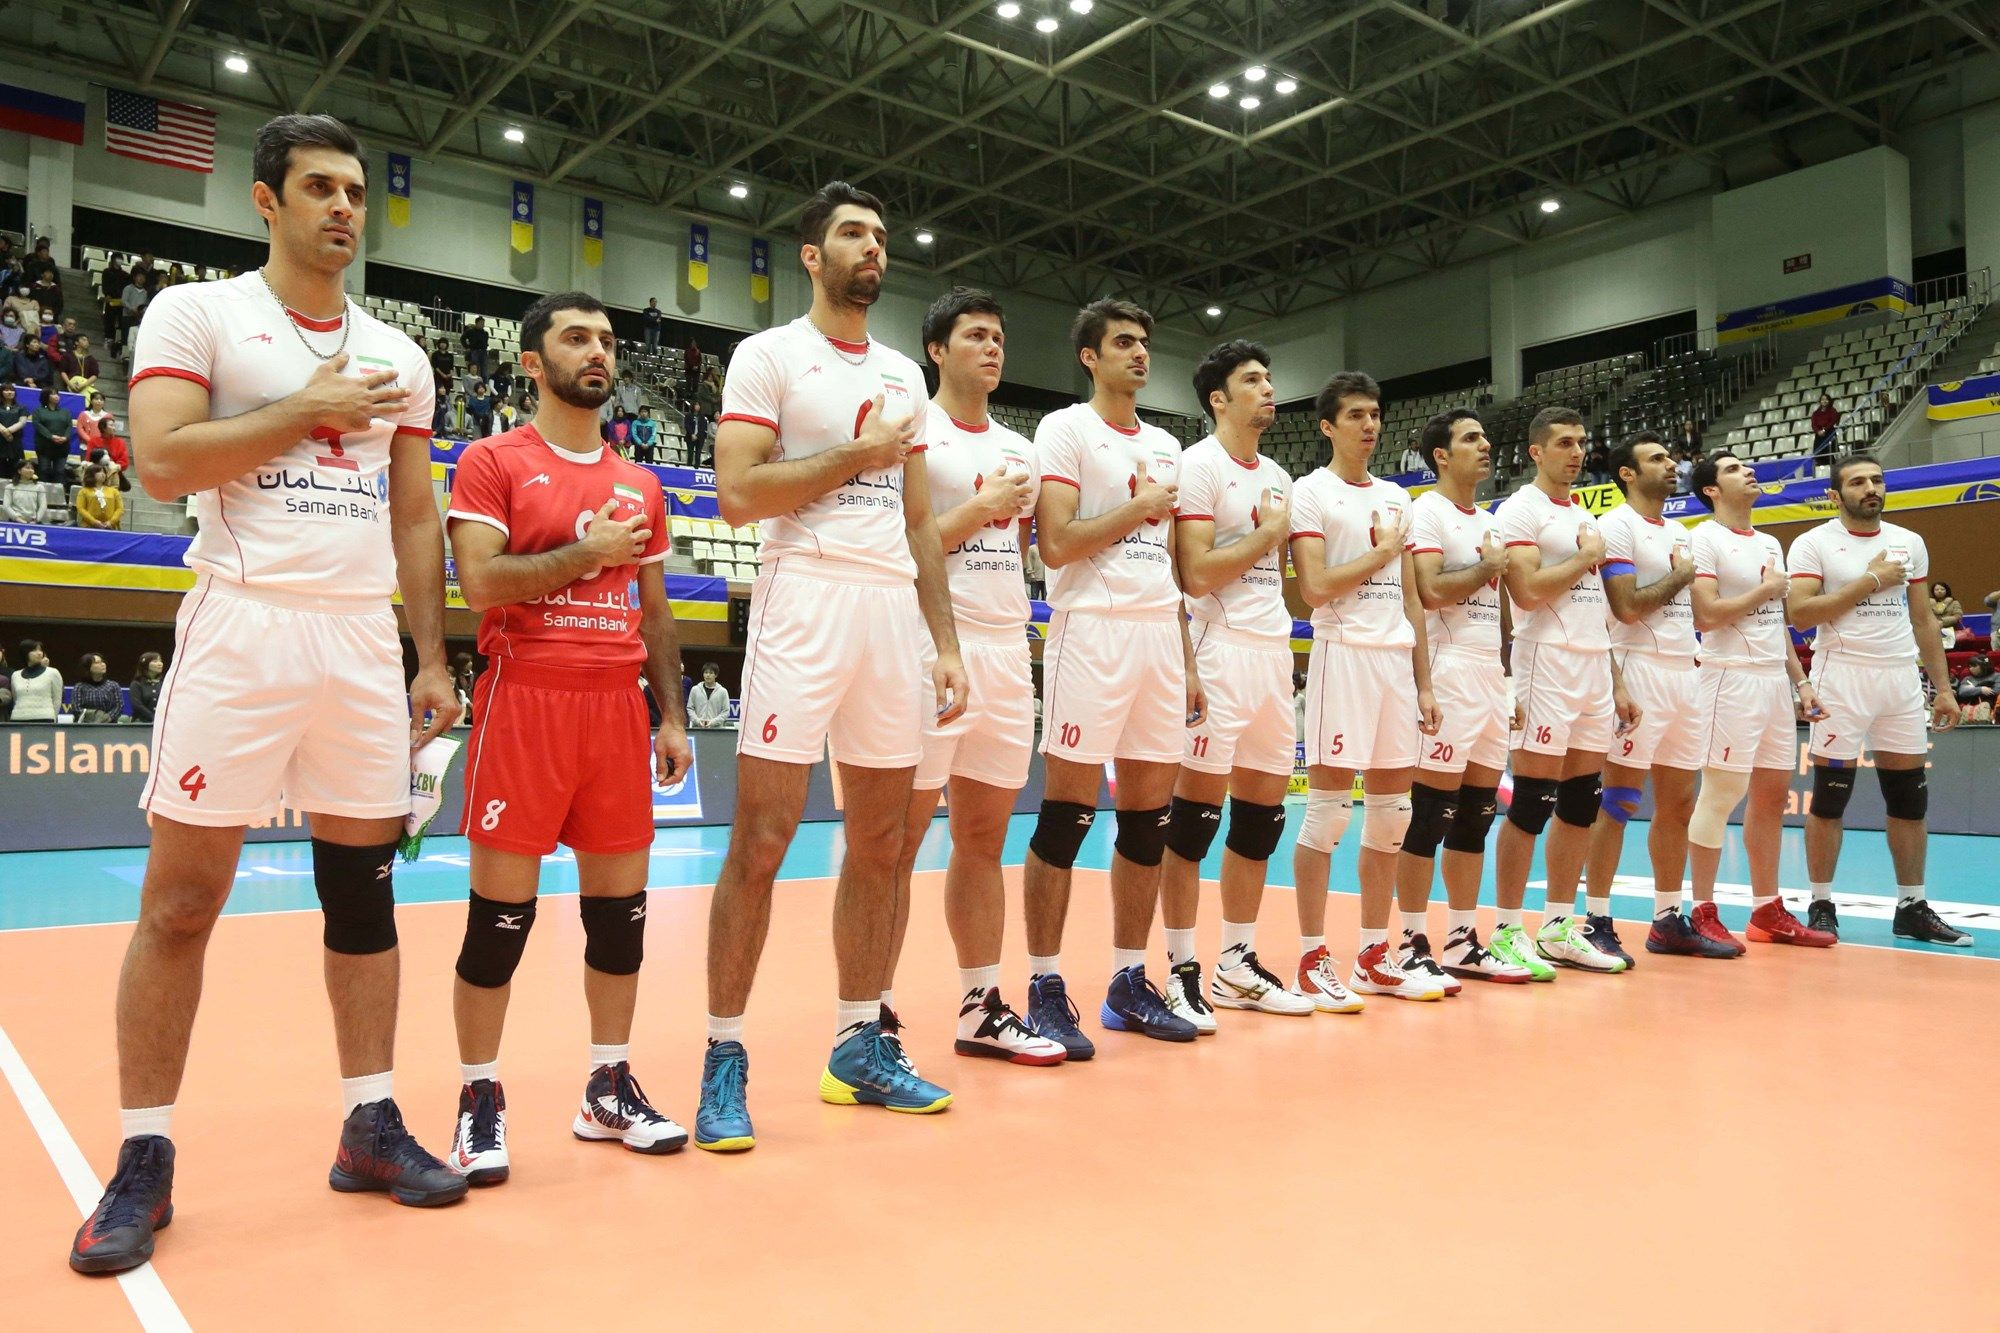 Iran Volleyball Team Wallpaper Volleyball Team Team Wallpaper Volleyball